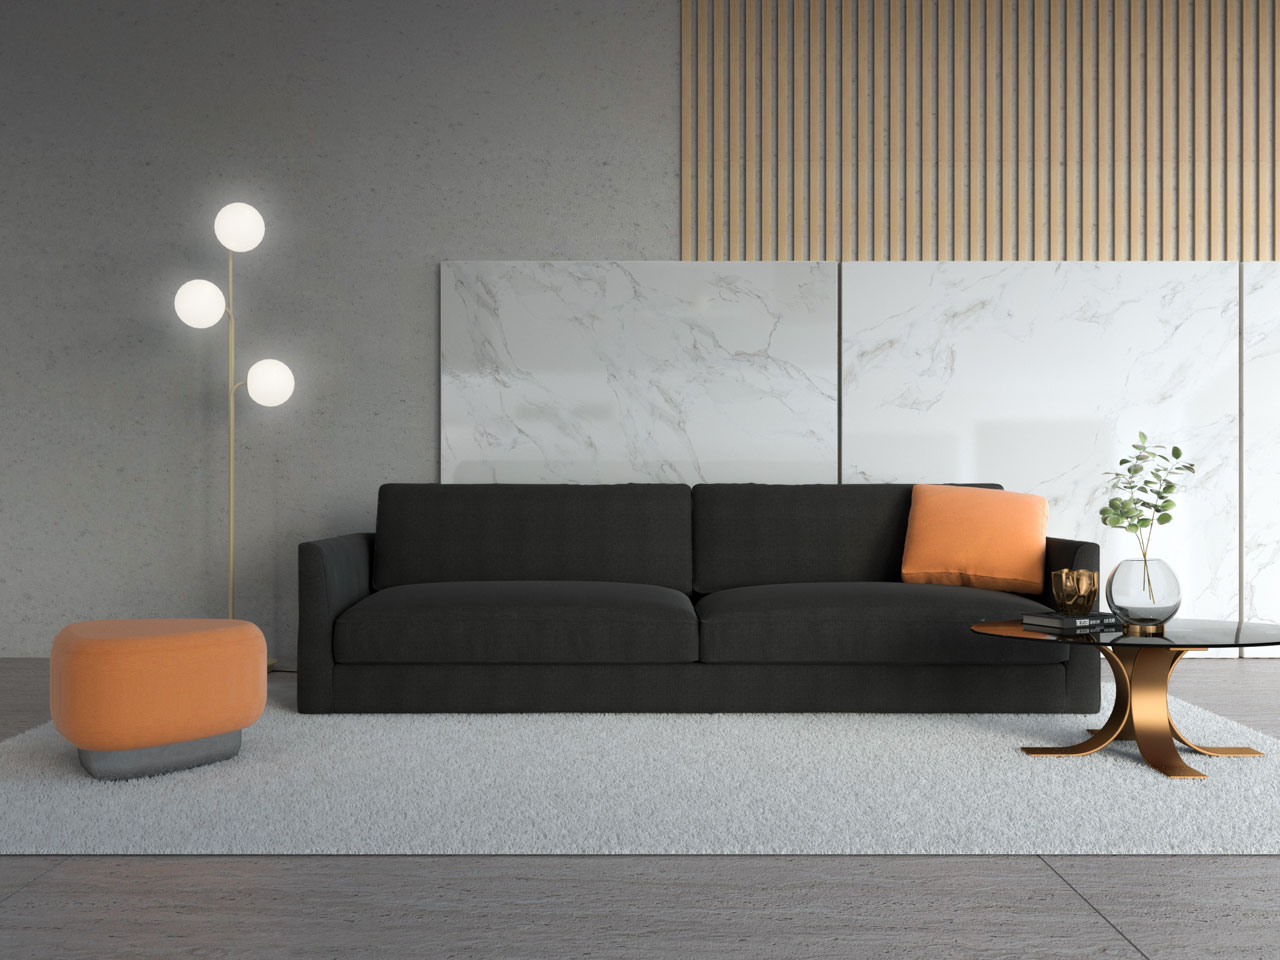 Peach ottoman with black couch